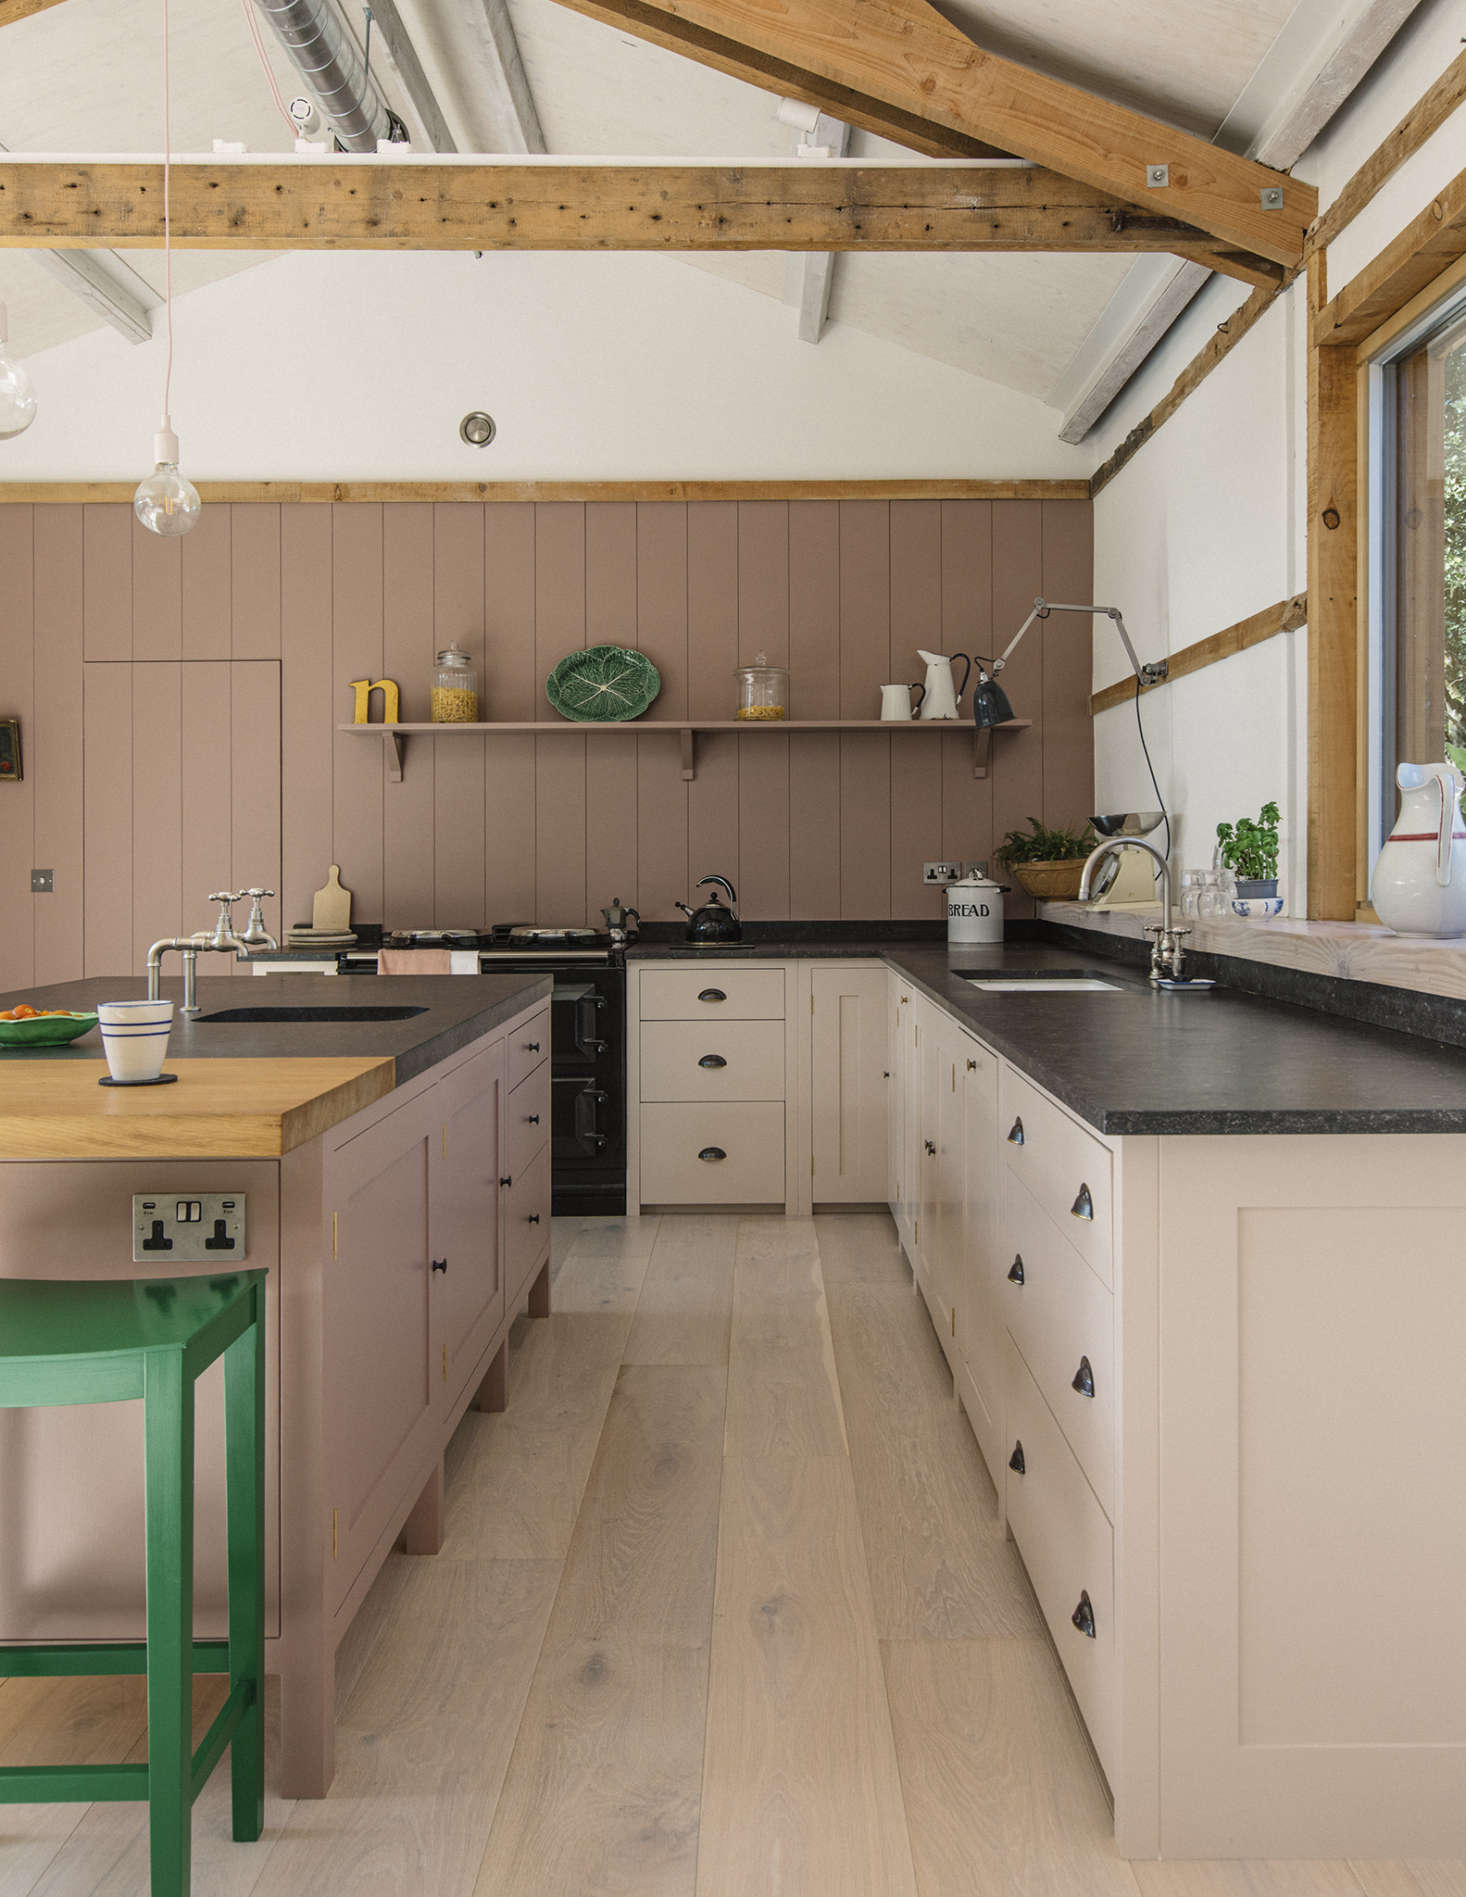 The kitchen cabinets are made of poplar with oak veneered interiors and solid oak dovetailed drawers. The counters are blue-black Belgian fossil stone with an &#8